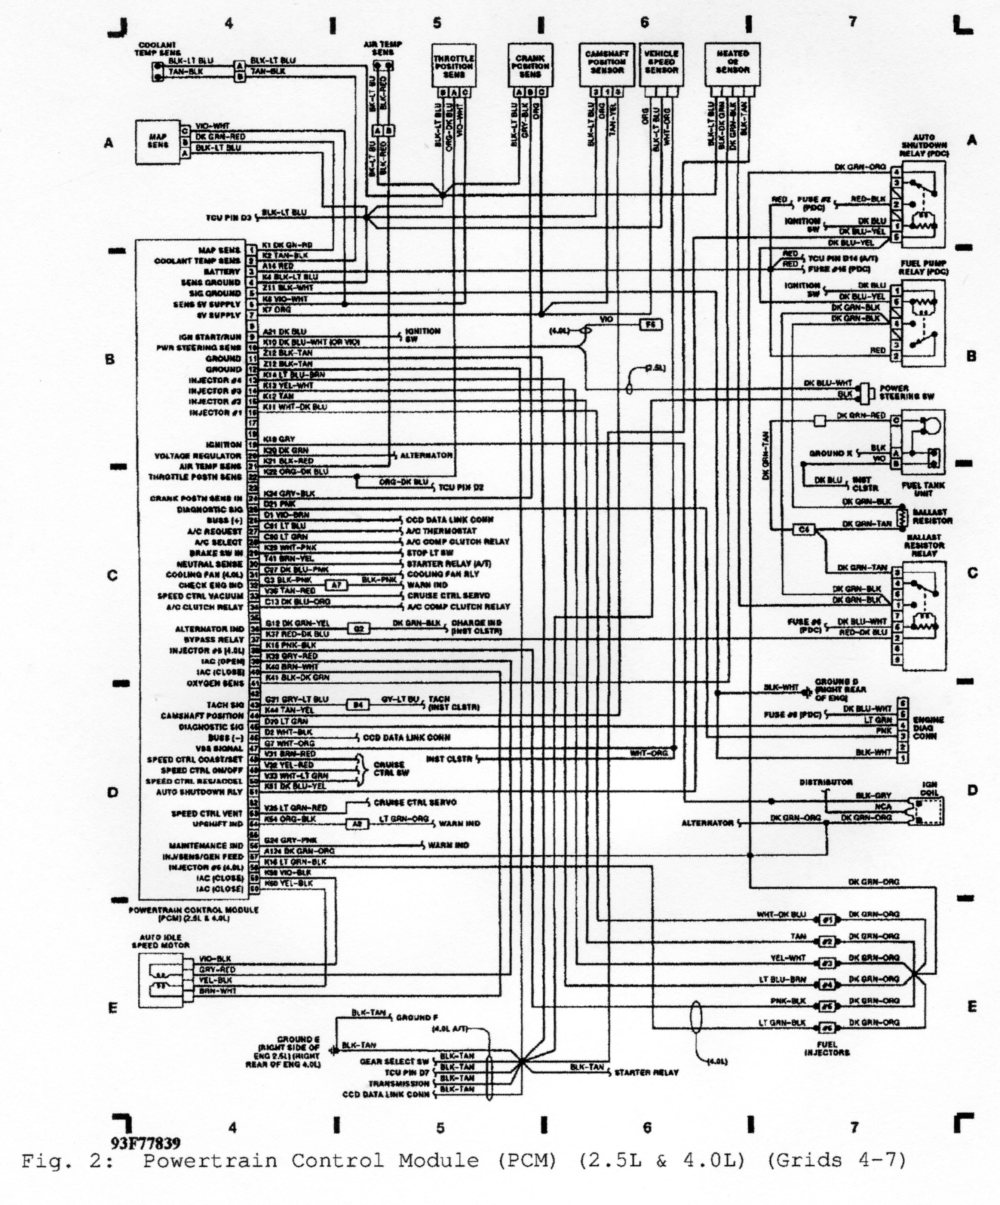 medium resolution of gray marine engine diagram gray circuit diagrams wiring diagram center gray marine engine diagram gray circuit diagrams